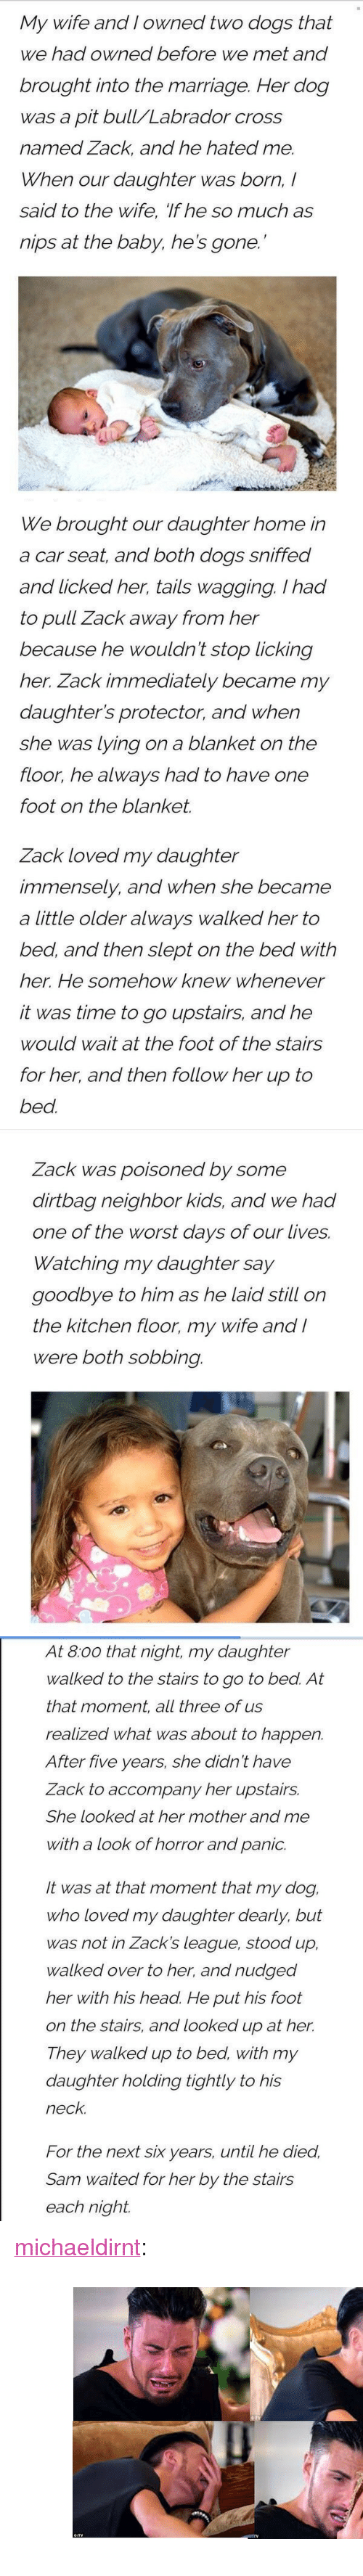 """Dogs, Head, and Marriage: and I owned two dogs  My wife that  we had owned before we met and  brought into the marriage. Her dog  was a pit bull/Labrador cross  named Zack, and he hated me.  When our daughter was born,/  said to the wife, if he so much as  nips at the baby, he's gone.   We brought our daughter home in  a car seat, and both dogs sniffed  and licked her, tails wagging. Ihad  to pull Zack away from her  because he wouldn't stop licking  her. Zack immediately became my  daughter's protector, and when  she was lying on a blanket on the  floor, he always had to have one  foot on the blanket.  Zack loved my daughter  immensely, and when she became  a little older always walked her to  bed, and then slept on the bed with  her. He somehow knew whenever  it was time to go upstairs, and he  would wait at the foot of the stairs  for her, and then follow her up to  bed.   ack was poisoned by some  dirtbag neighbor kids, and we had  one of the worst days of our lives.  Watching my daughter say  goodbye to him as he laid still on  the kitchen floor, my wife and /  were both sobbing.   At 8:00 that night, my daughter  walked to the stairs to go to bed. At  that moment, all three of us  realized what was about to happen.  After five years, she didn't have  Zack to accompany her upstairs.  She looked at her mother and me  with a look of horror and panic.  It was at that moment that my dog,  who loved my daughter dearly, but  was not in Zack's league, stood up,  walked over to her, and nudged  her with his head. He put his foot  on the stairs, and looked up at her.  They walked up to bed, with my  daughter holding tightly to his  neck.  For the next six years, until he died.  Sam waited for her by the stairs  each night. <p><a class=""""tumblr_blog"""" href=""""http://michaeldirnt.tumblr.com/post/143325578779"""">michaeldirnt</a>:</p> <blockquote> <p><figure class=""""tmblr-full""""><img src=""""https://78.media.tumblr.com/3c6060e89d87b8abb7a0f13eb210e313/tumblr_inline_o66wqiGvW21r06evx_5"""